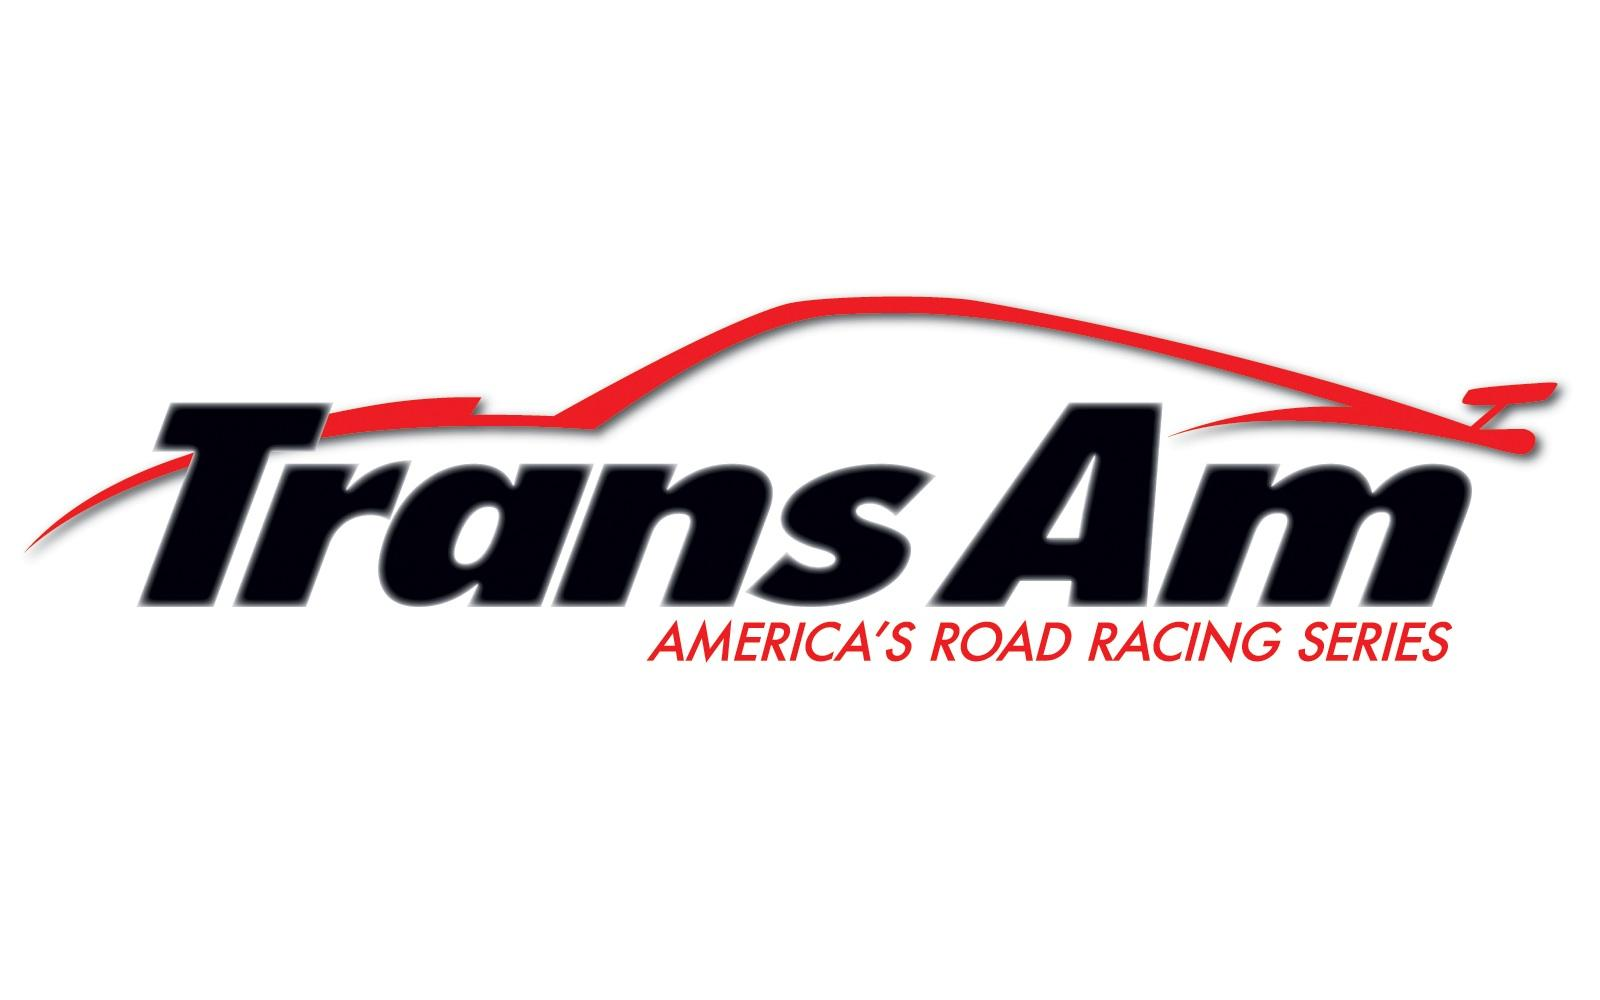 Lopez Takes Wire-To-Wire Victory in 2011 Trans Am Series Opener at Sebring; Rodgers Scores Inaugural Class Win in Trans-Am 2